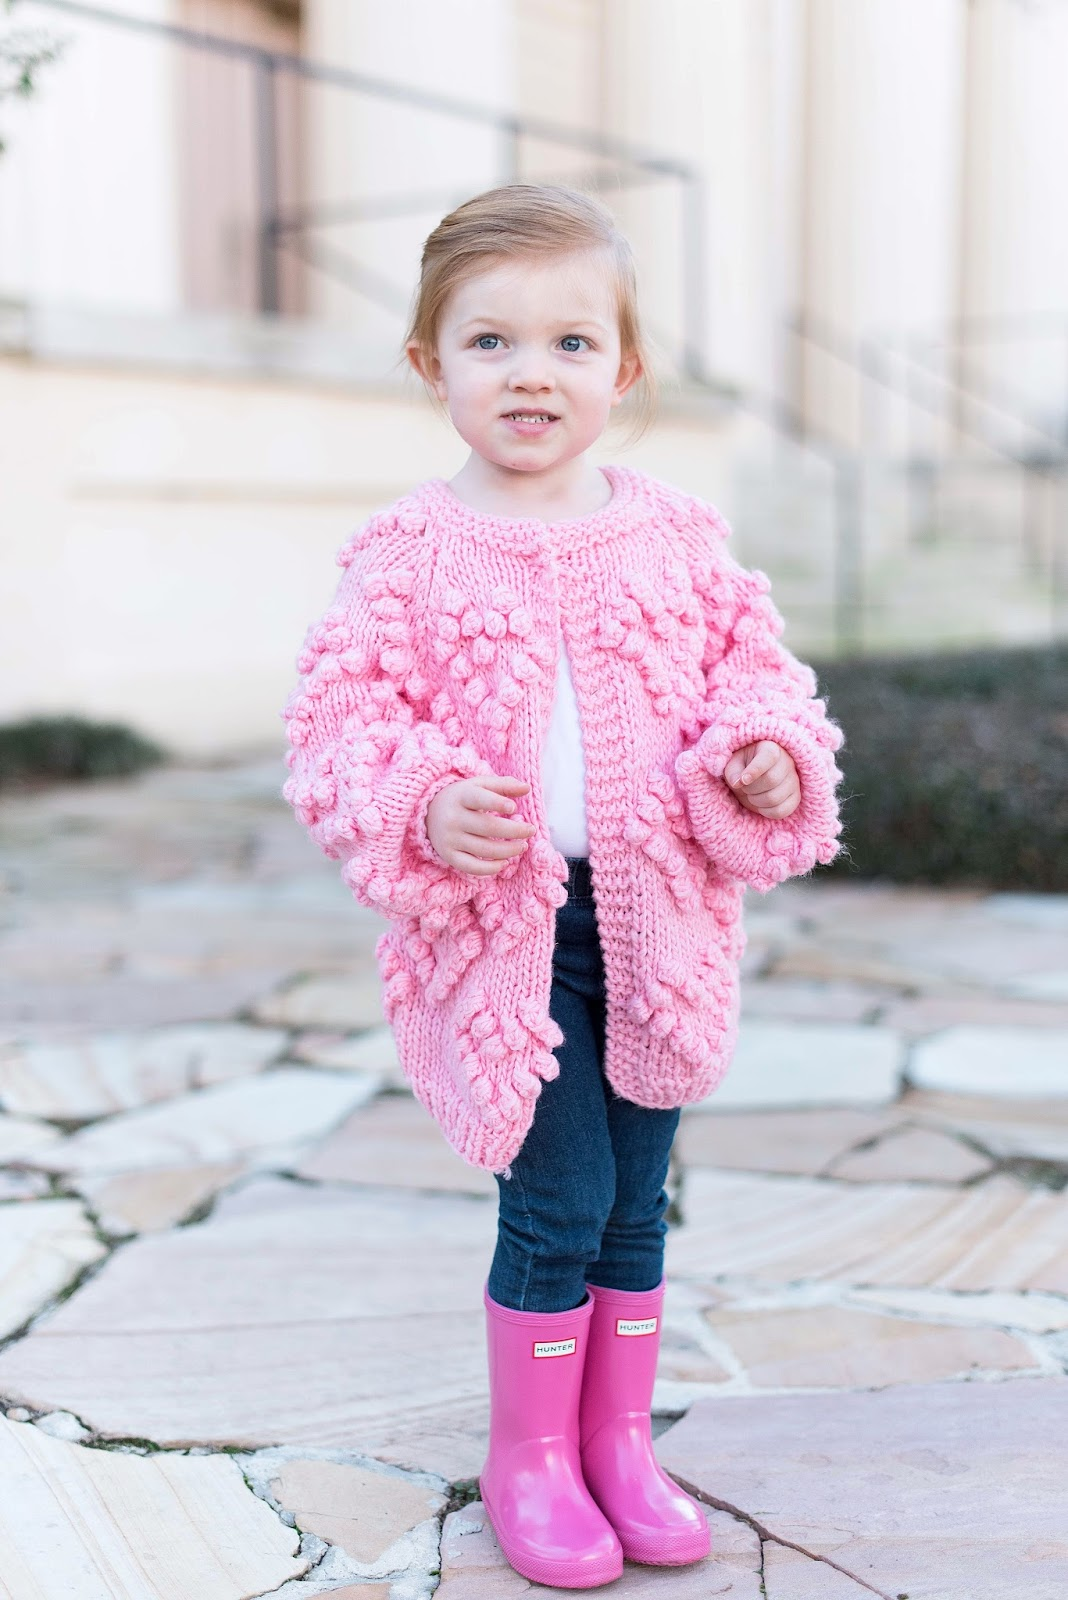 Heart Cardigan for kids + Pink Hunter Boots - All details can be found on Something Delightful Blog